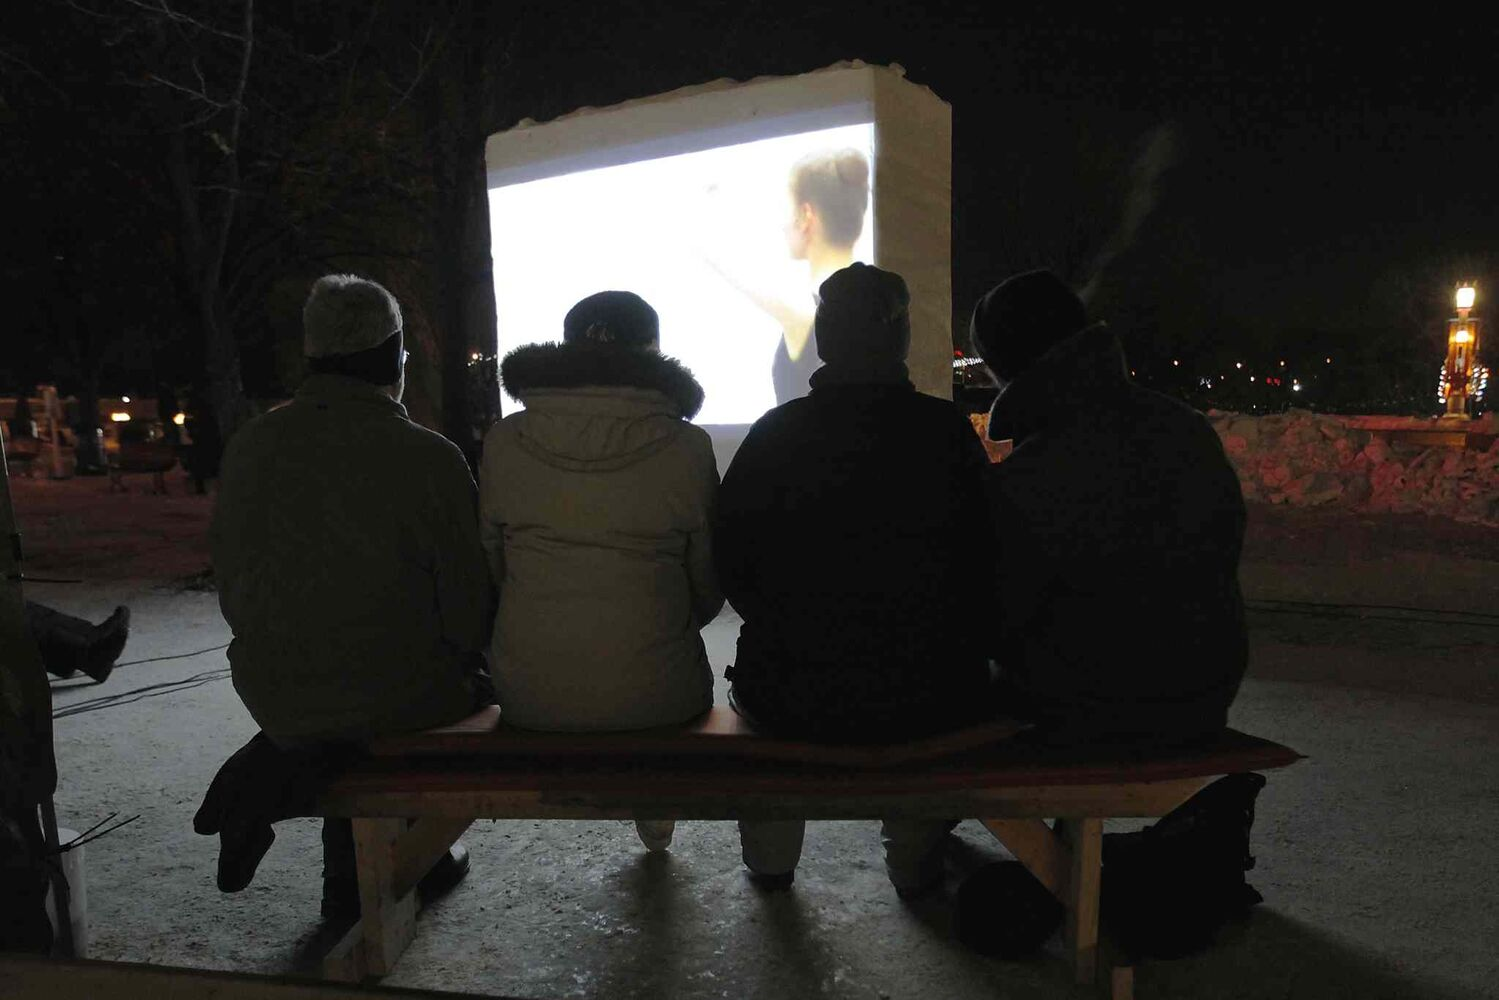 People watch a movie during the Canadian Sport Film Festival.